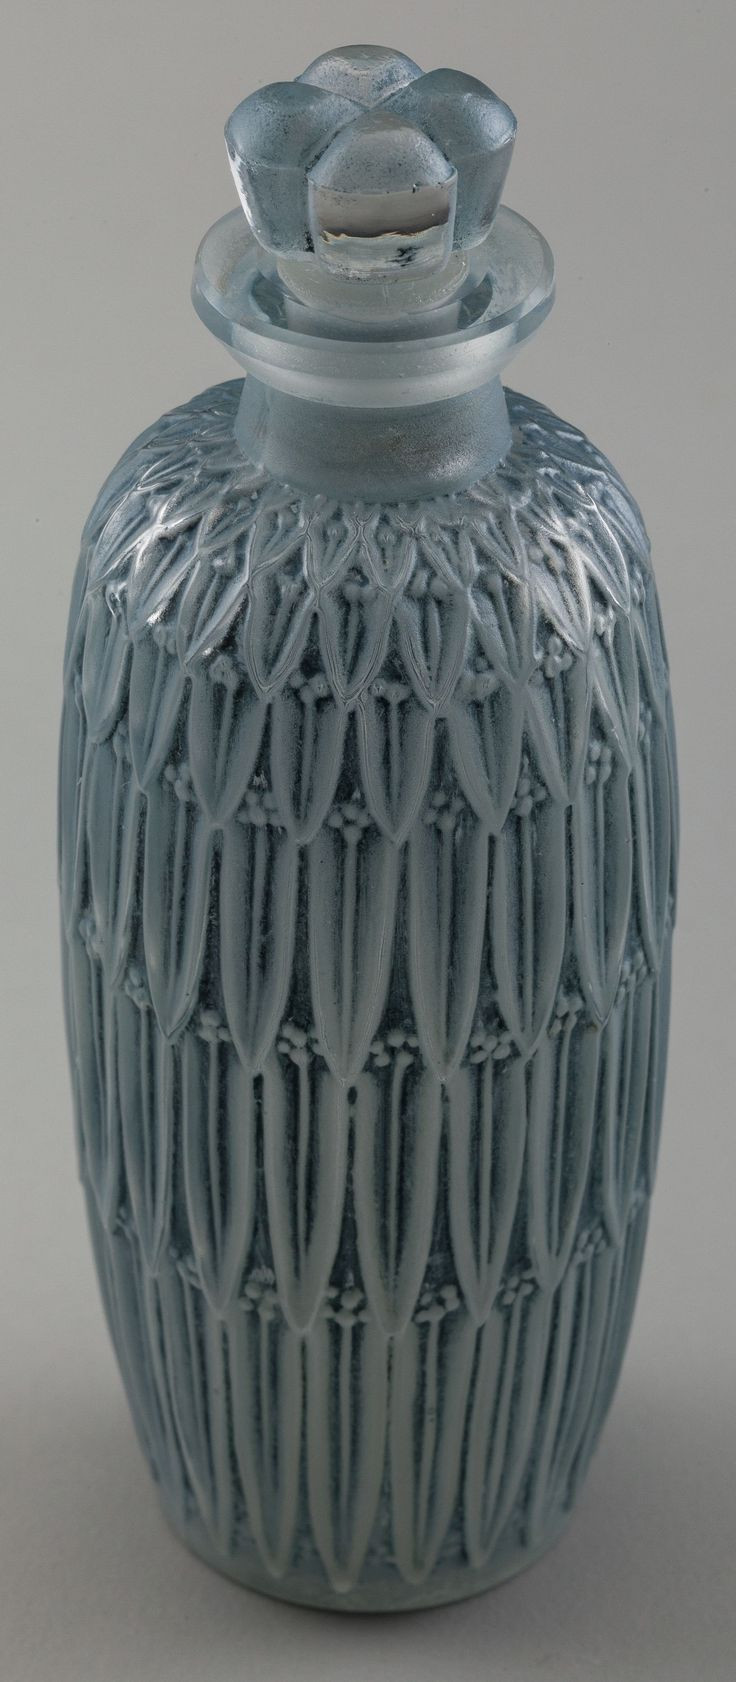 josh simpson vase of 2653 best glaskunst images on pinterest art nouveau crystals and intended for an r lalique frosted glass petites feuilles perfume with blue patina c 1910